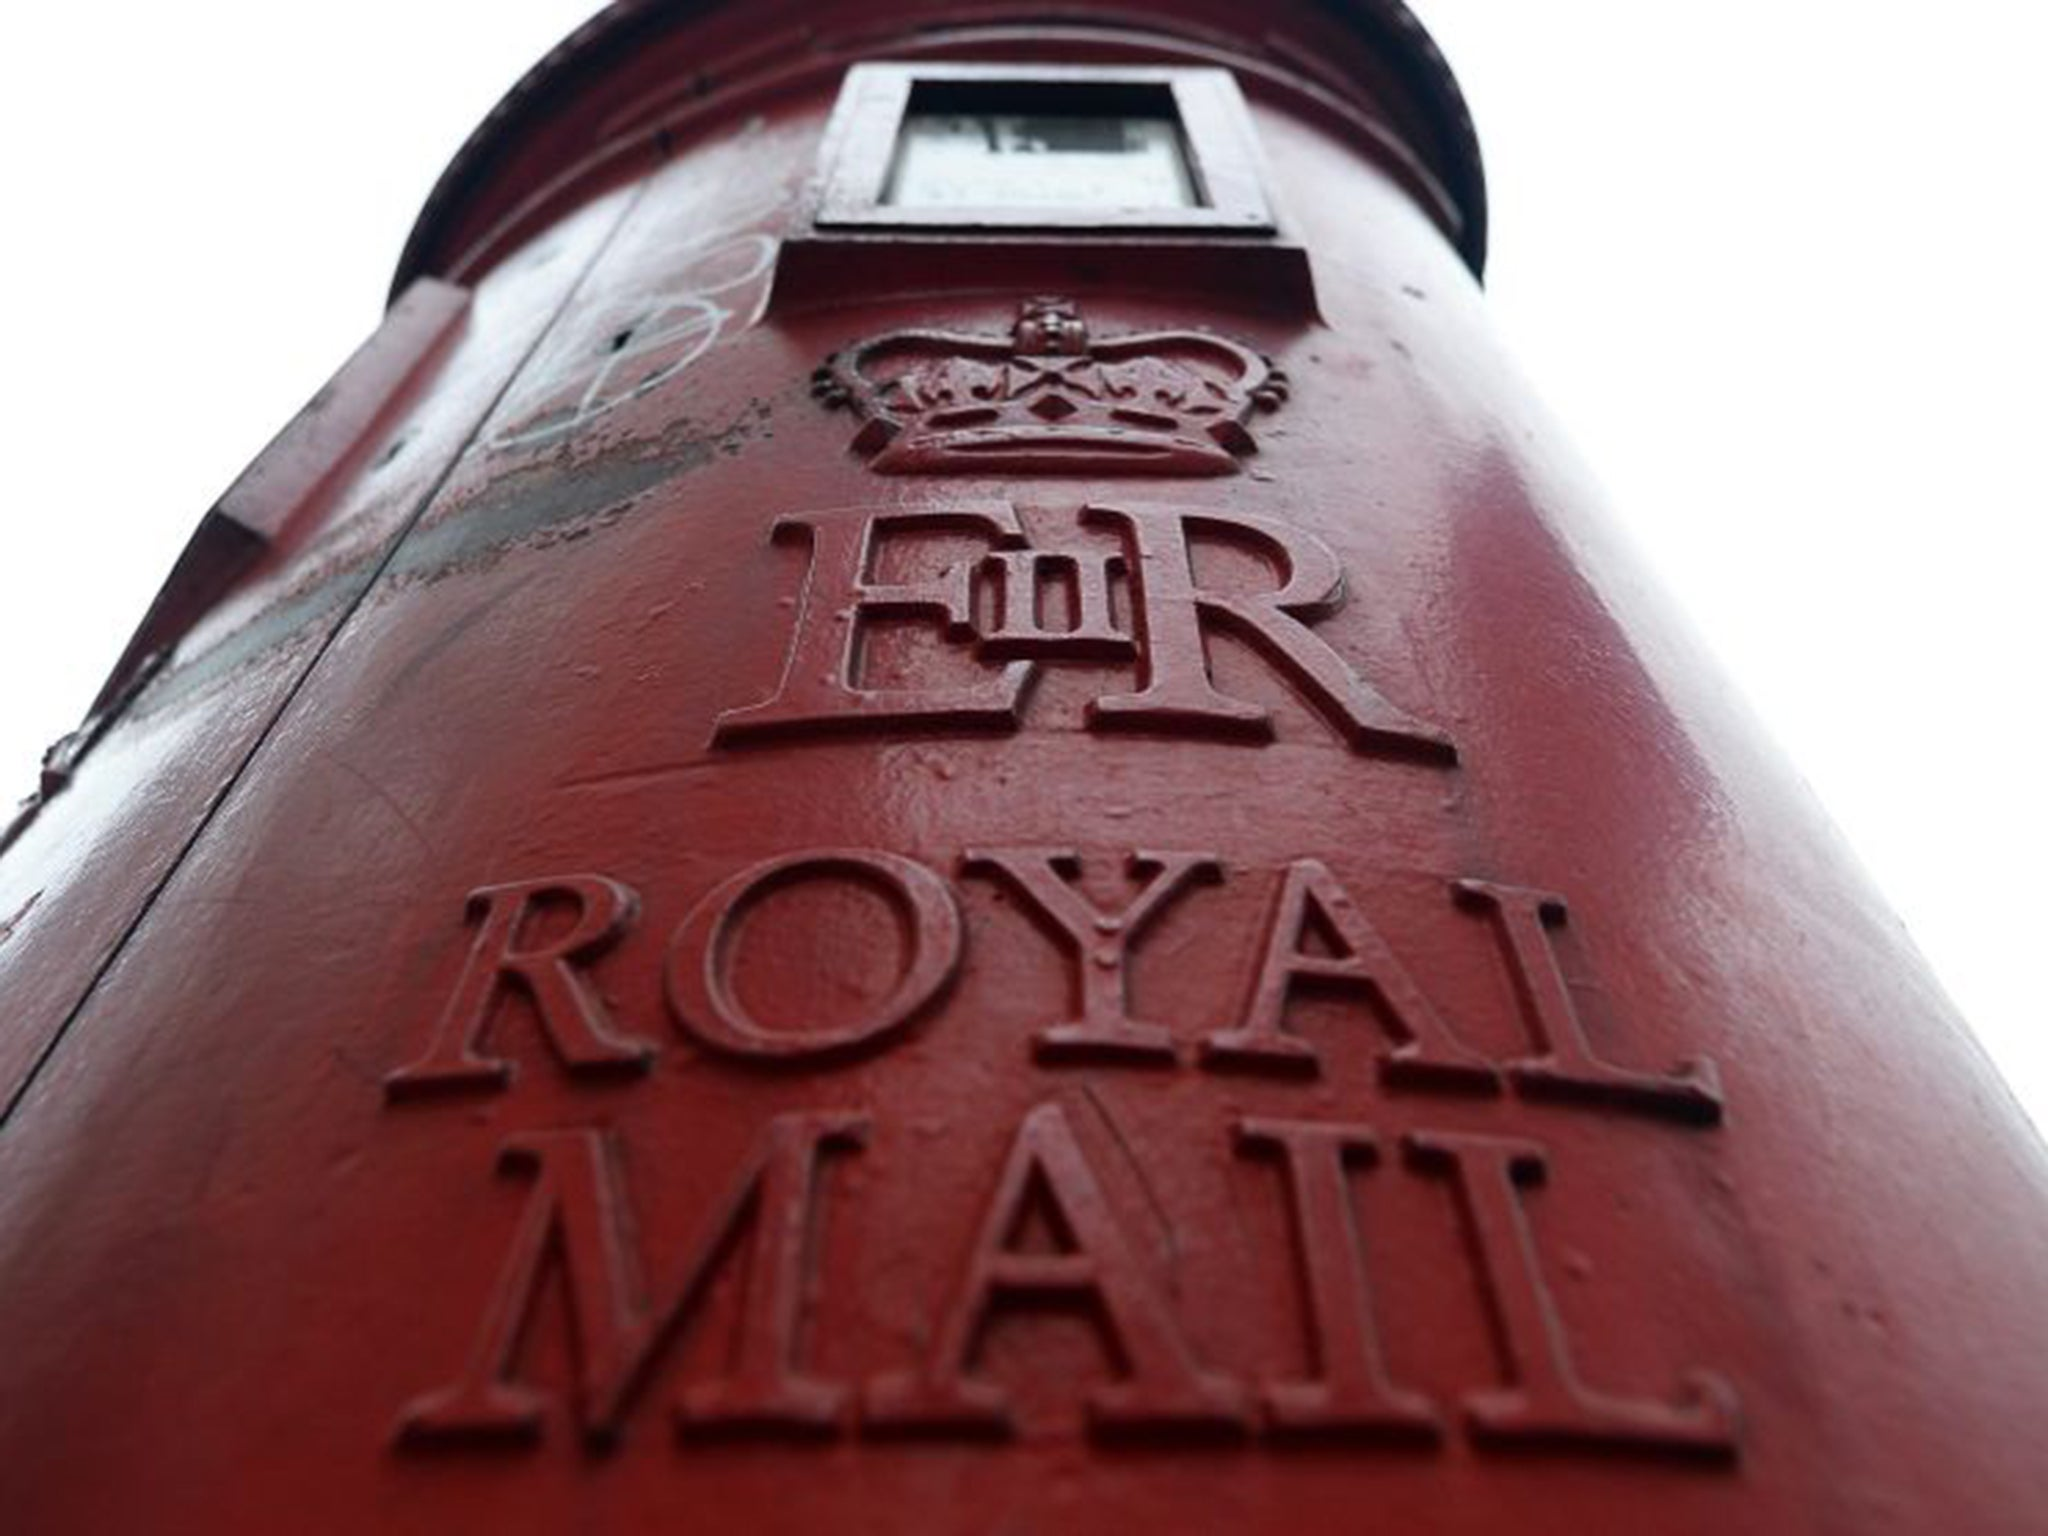 Singles Day 2015 Royal Mail And Alibaba Are Teaming Up To Import More Chinese Goods To The Uk The Independent The Independent Bulk buy alibaba online from chinese suppliers on dhgate.com. the independent